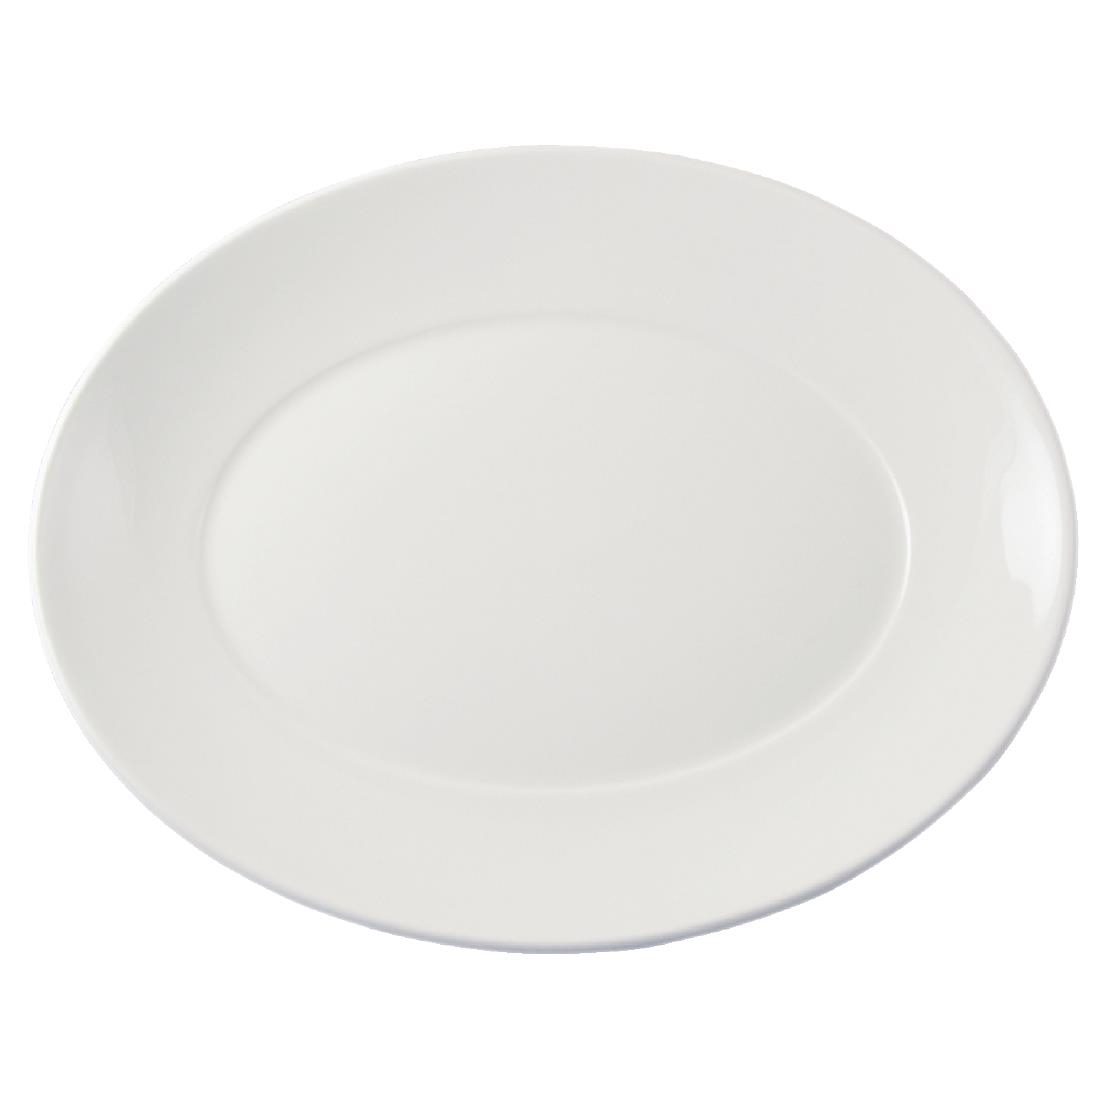 Image of Dudson Flair Oval Platters 345mm (Pack of 12) Pack of 12